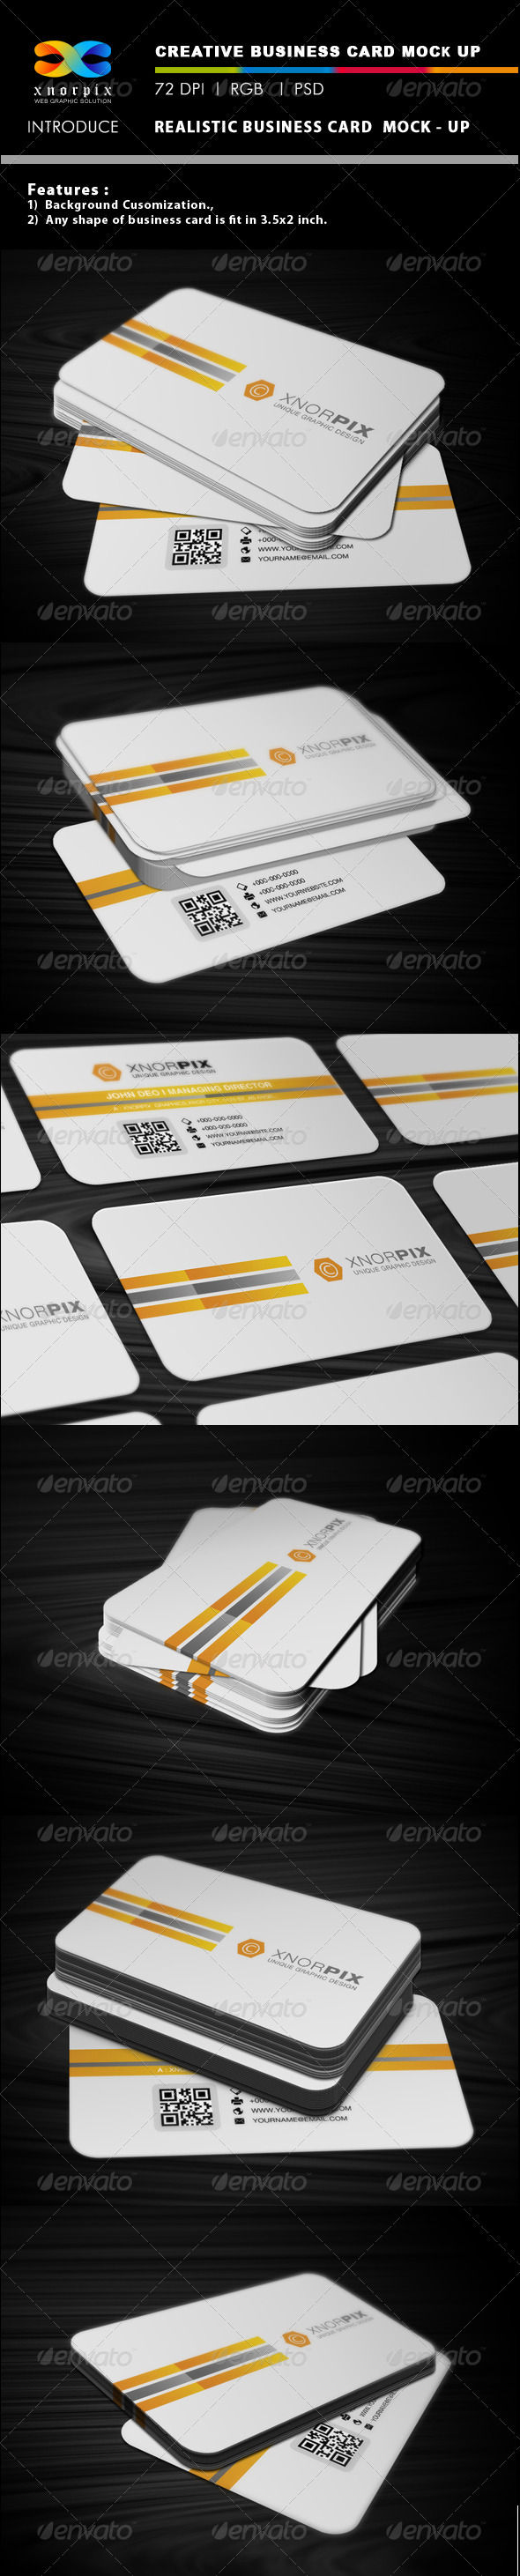 GraphicRiver Realistic Business Card Mock-up 2972154